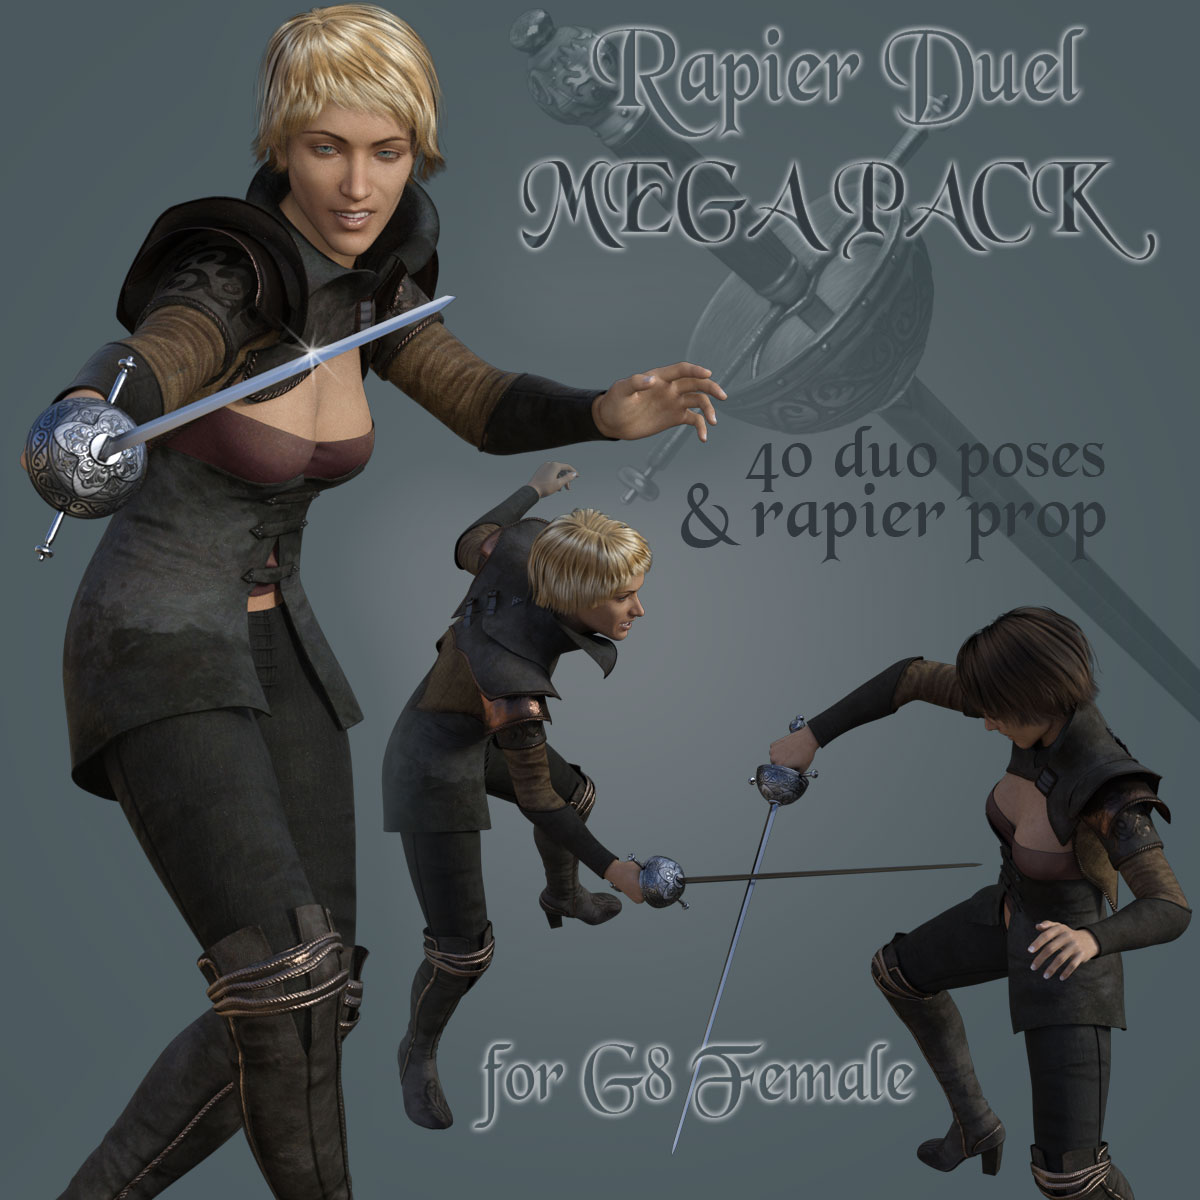 RAPIER DUEL MEGAPACK for Genesis 8 Female by PainMD